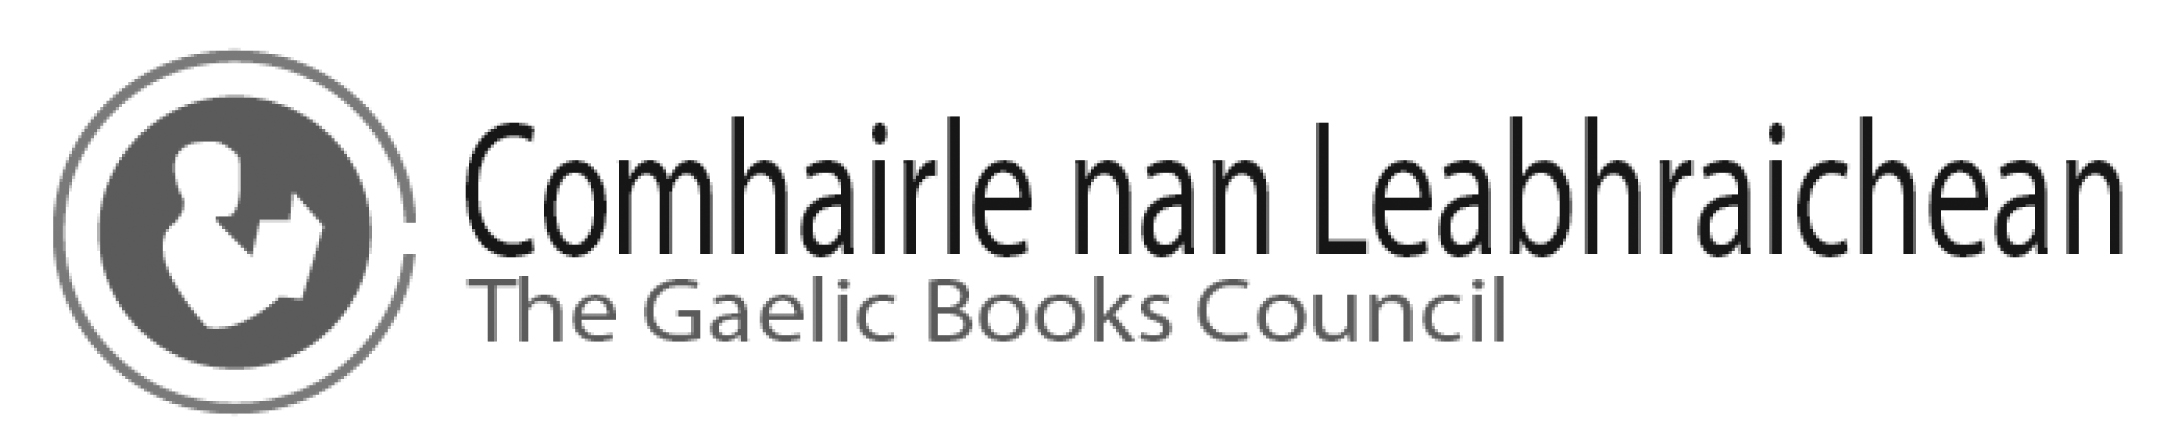 Gaelic Book Council